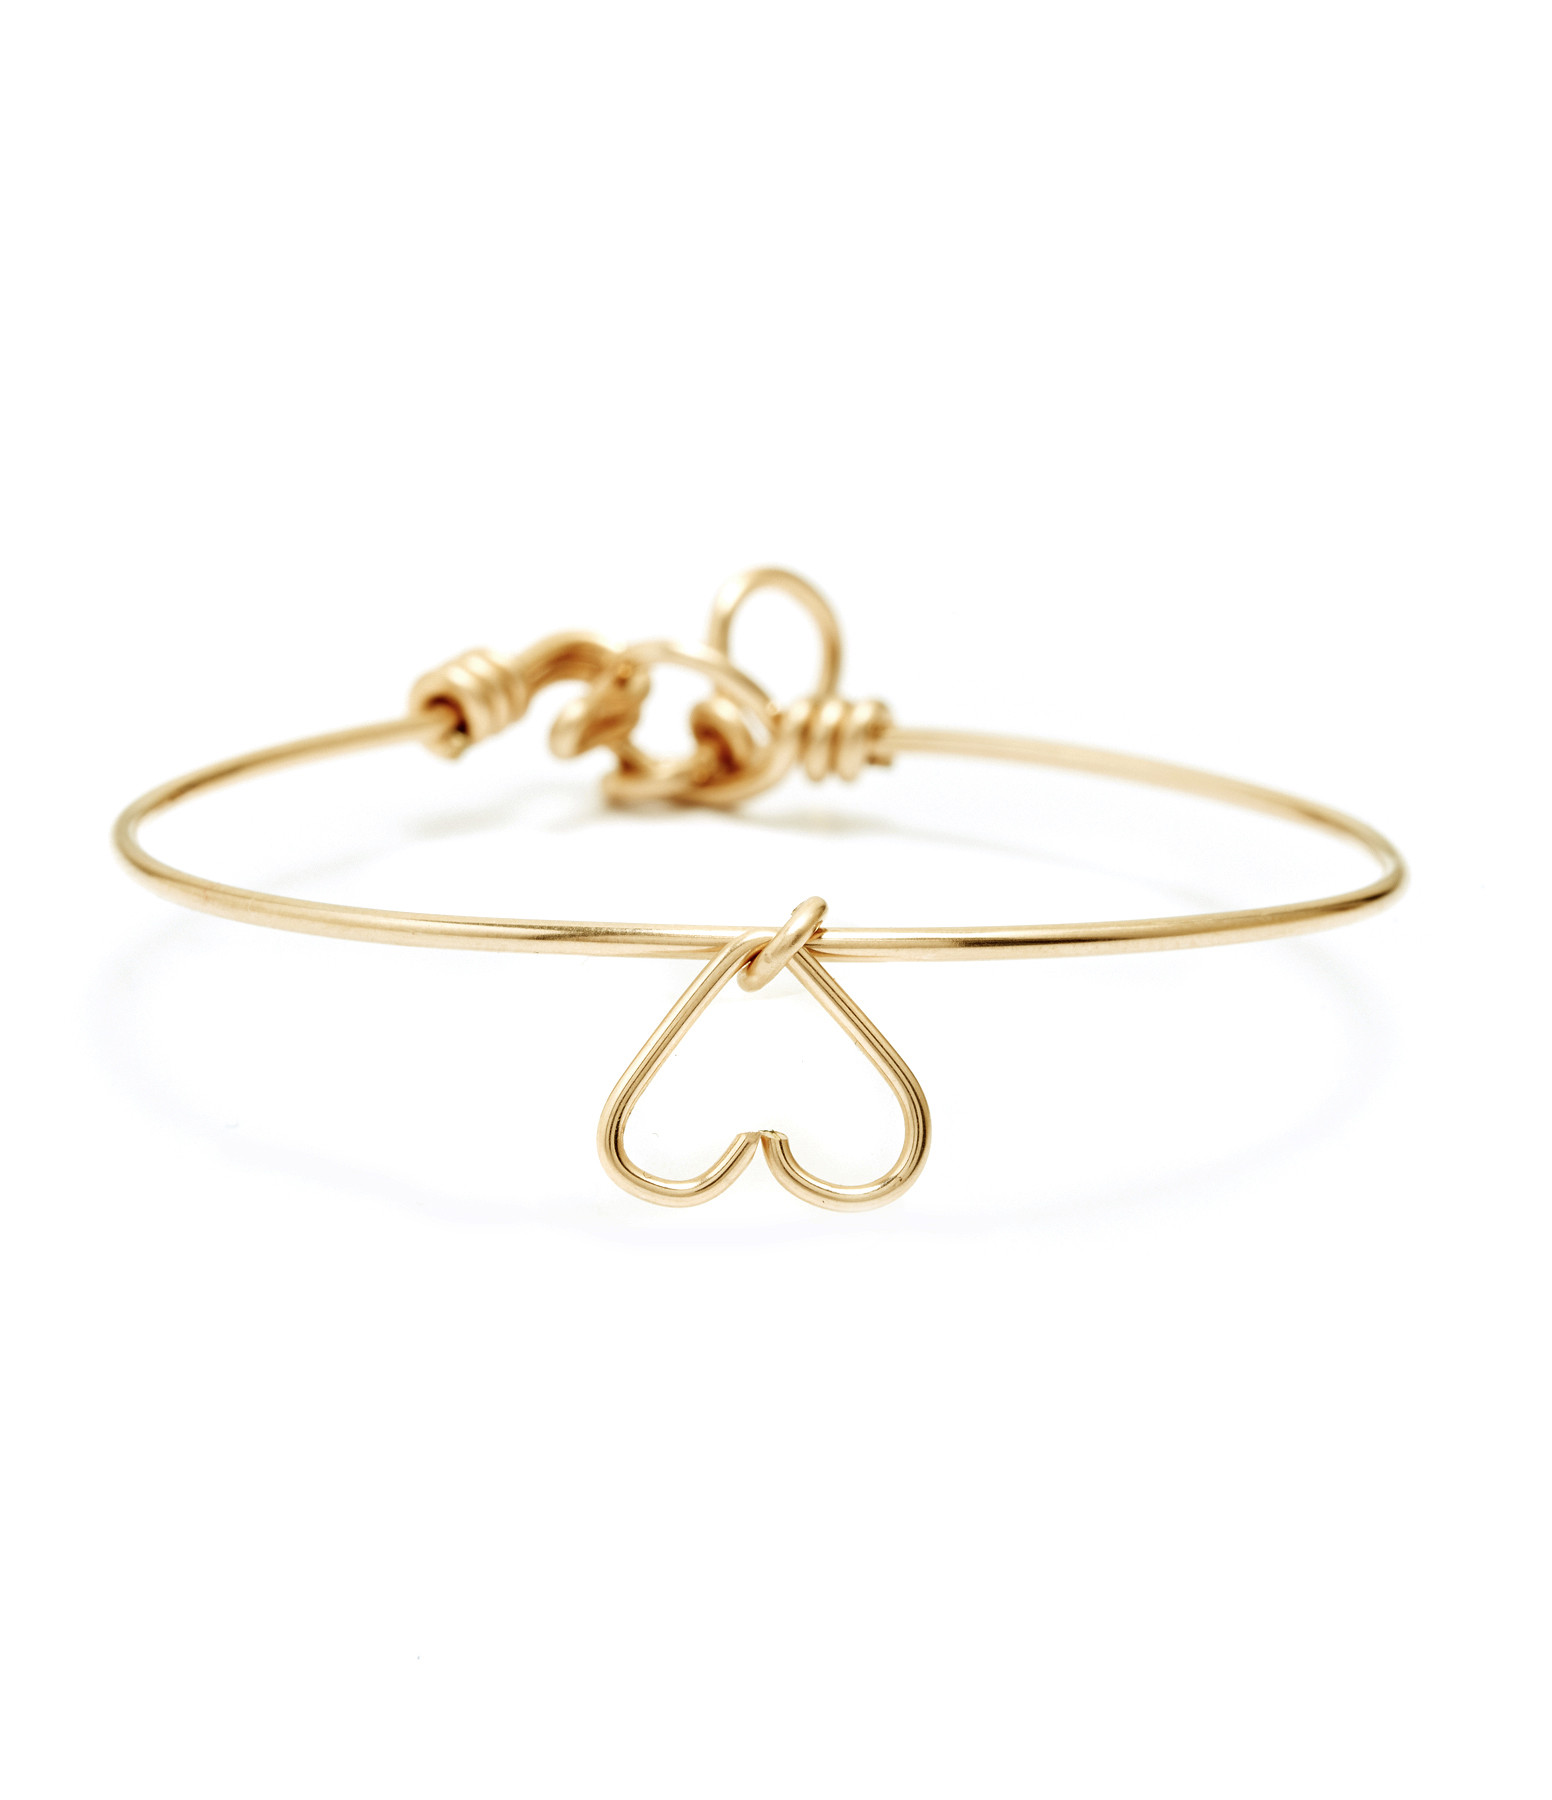 ATELIER PAULIN - Bracelet Pampille Charm Coeur Gold Filled Jaune